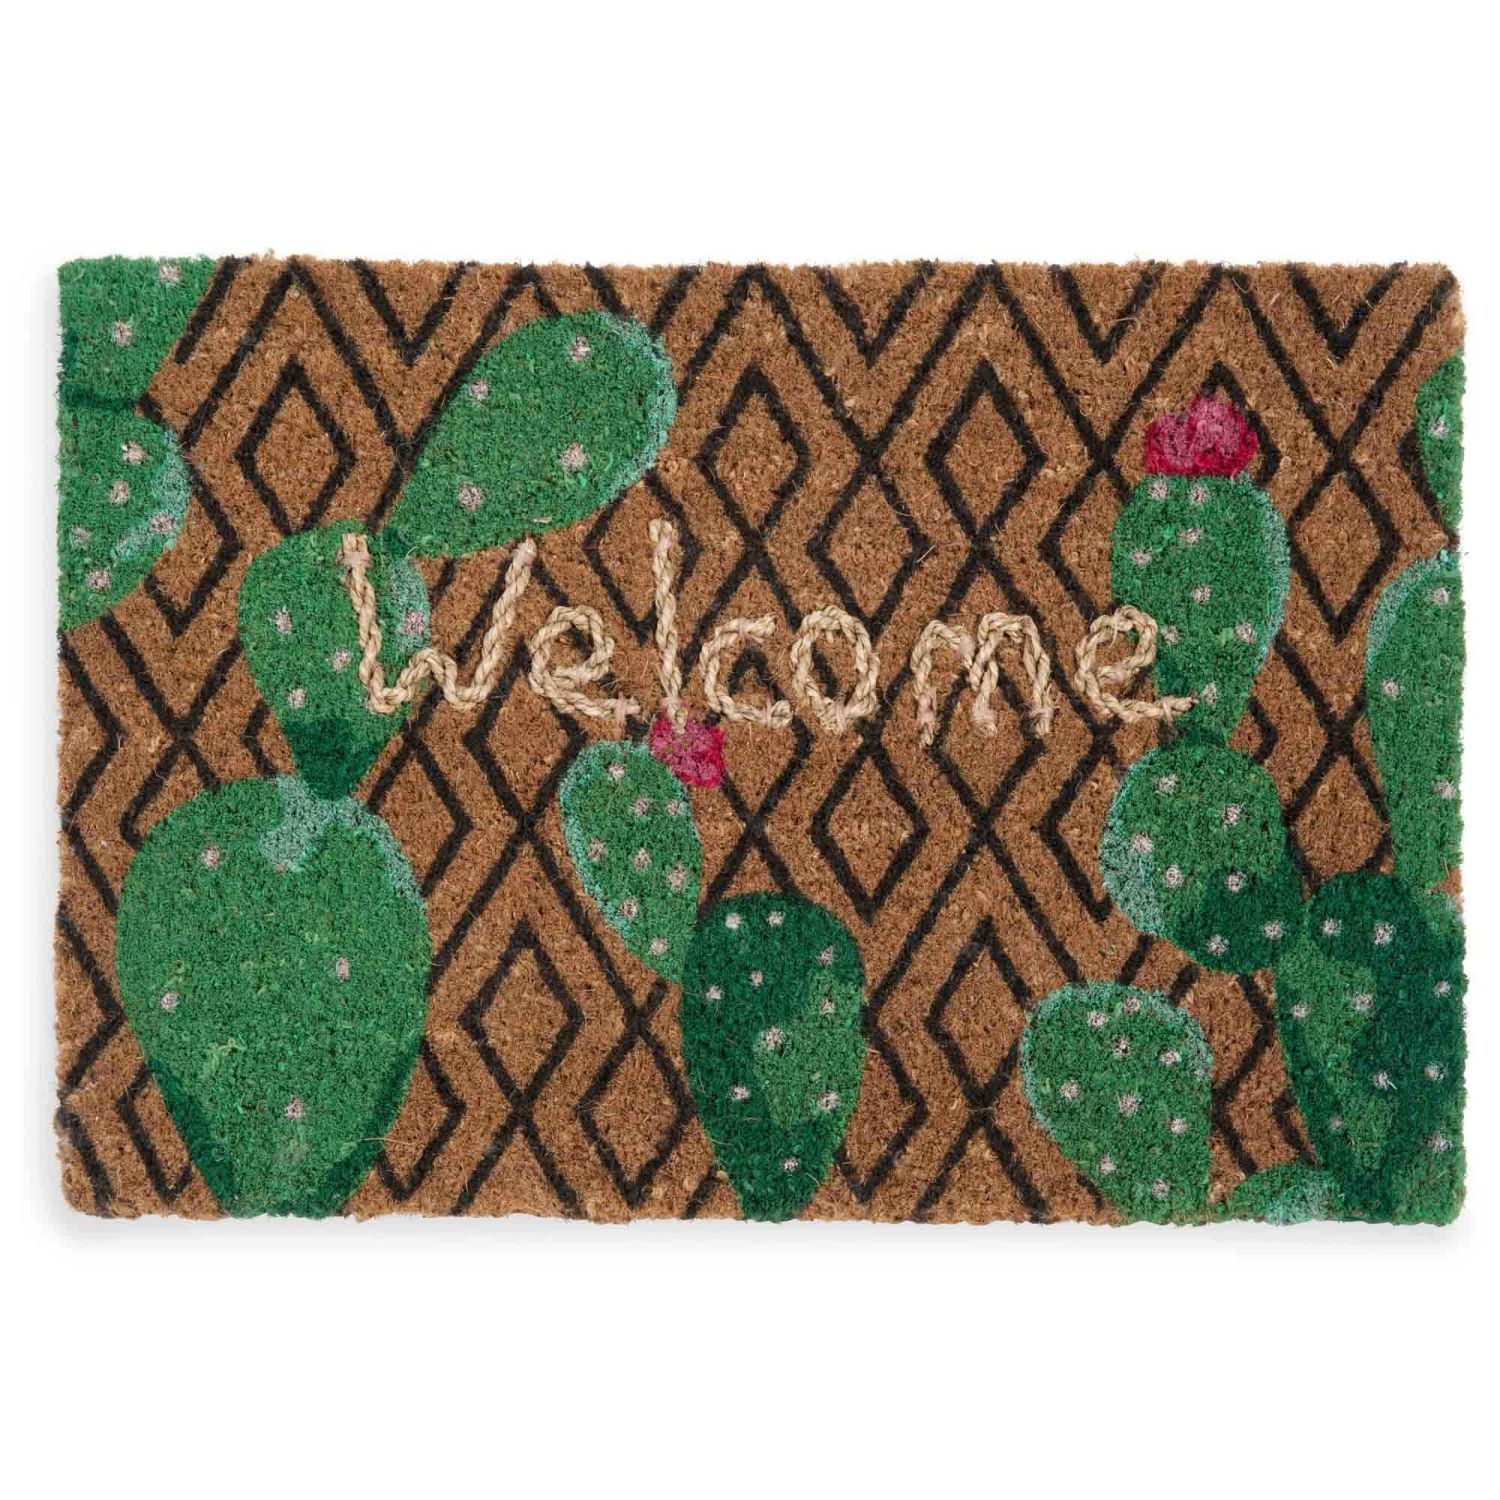 Welcome Cactus Doormat 40 X 60 In 2019 House Cactus Kids Rugs